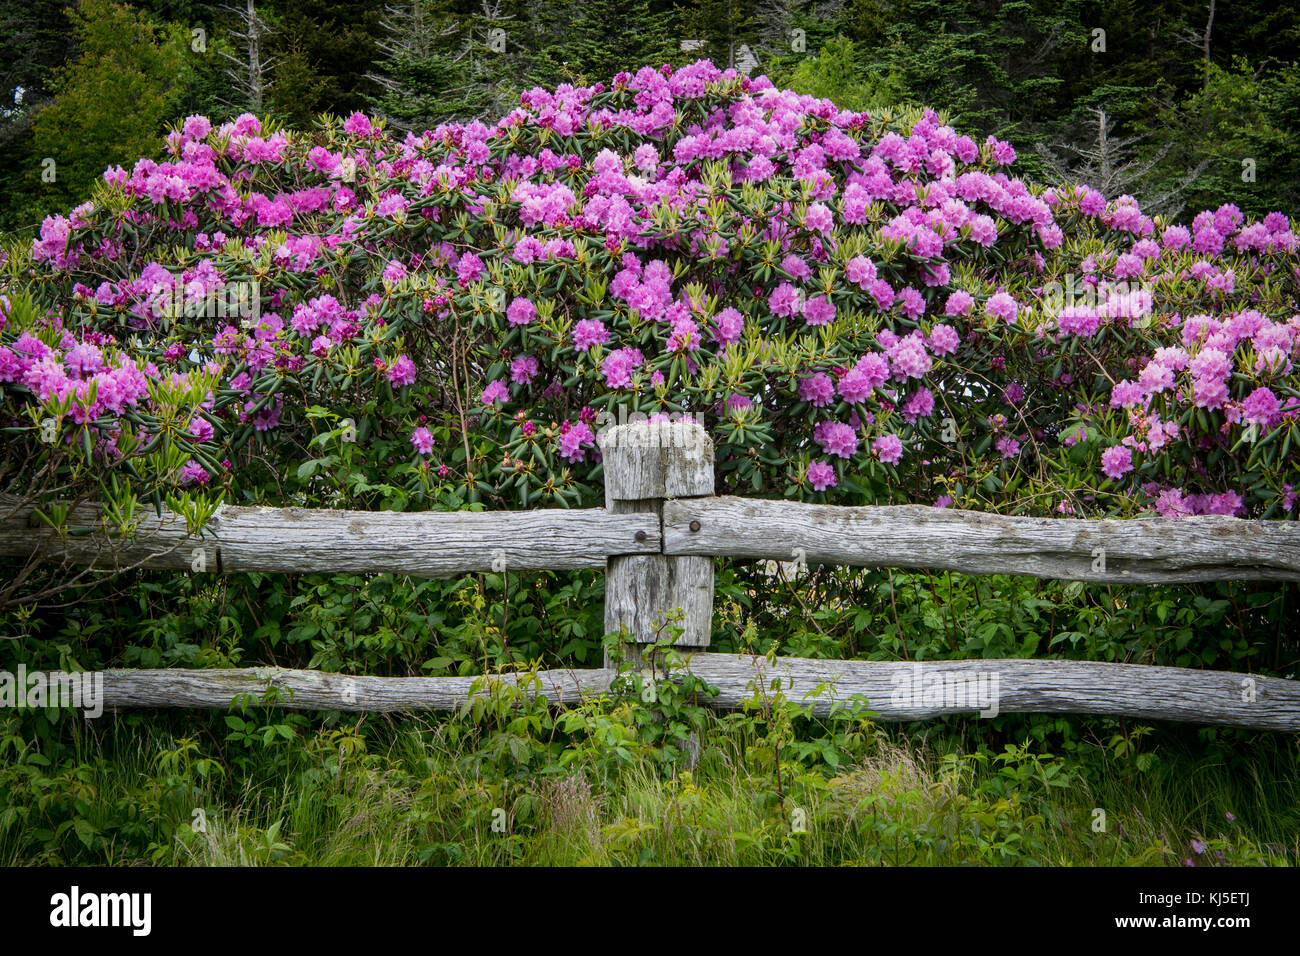 Rhododendron Blooms Over Post of Fence and Post - Stock Image